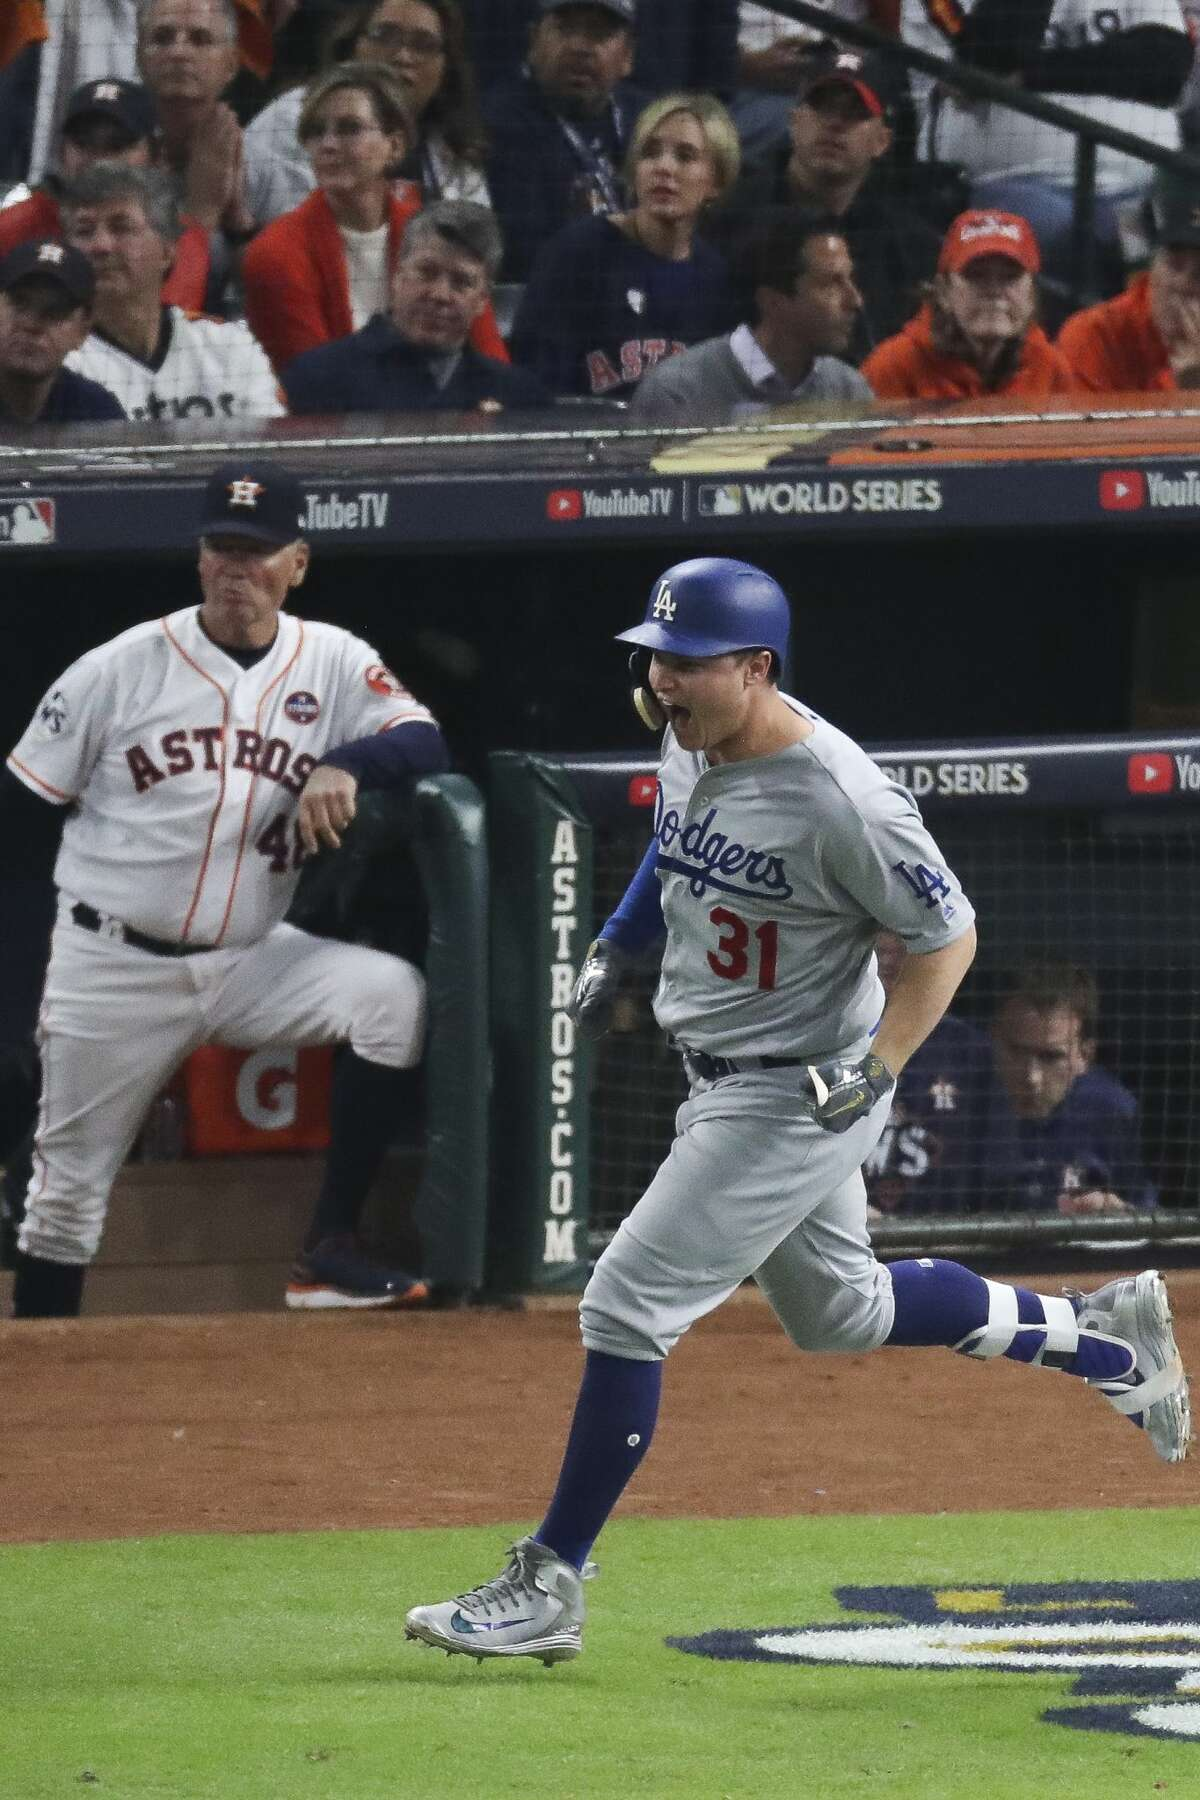 Los Angeles Dodgers center fielder Joc Pederson (31) hits a three-run home run during the ninth inning as the Houston Astros lose to the Los Angeles Dodgers 6-2 in Game 4 of the World Series at Minute Maid Park Saturday, Oct. 28, 2017 in Houston.